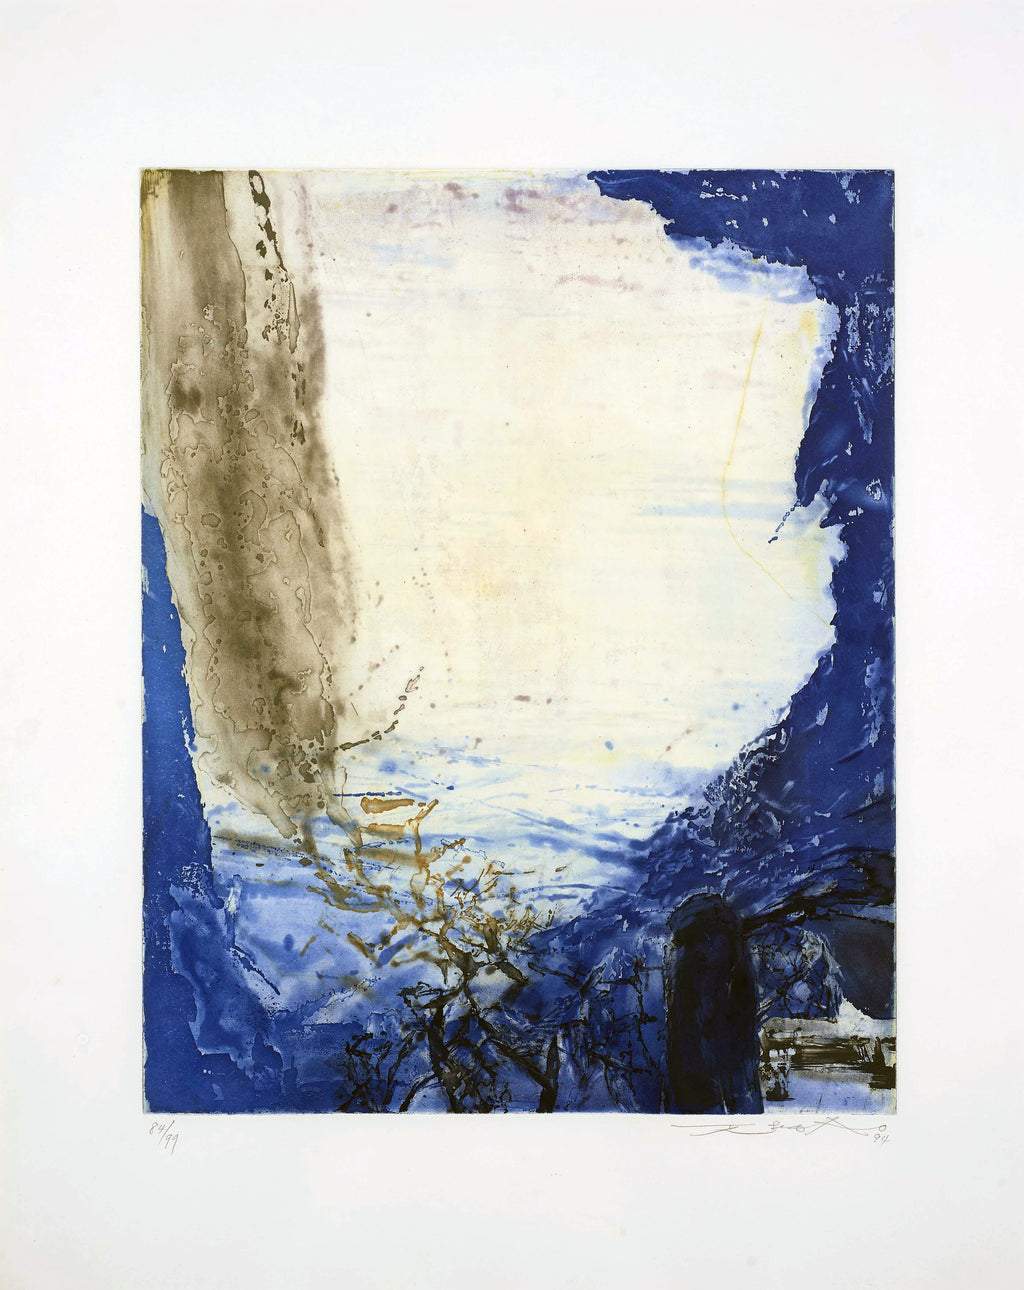 Etching by Zao Wou Ki